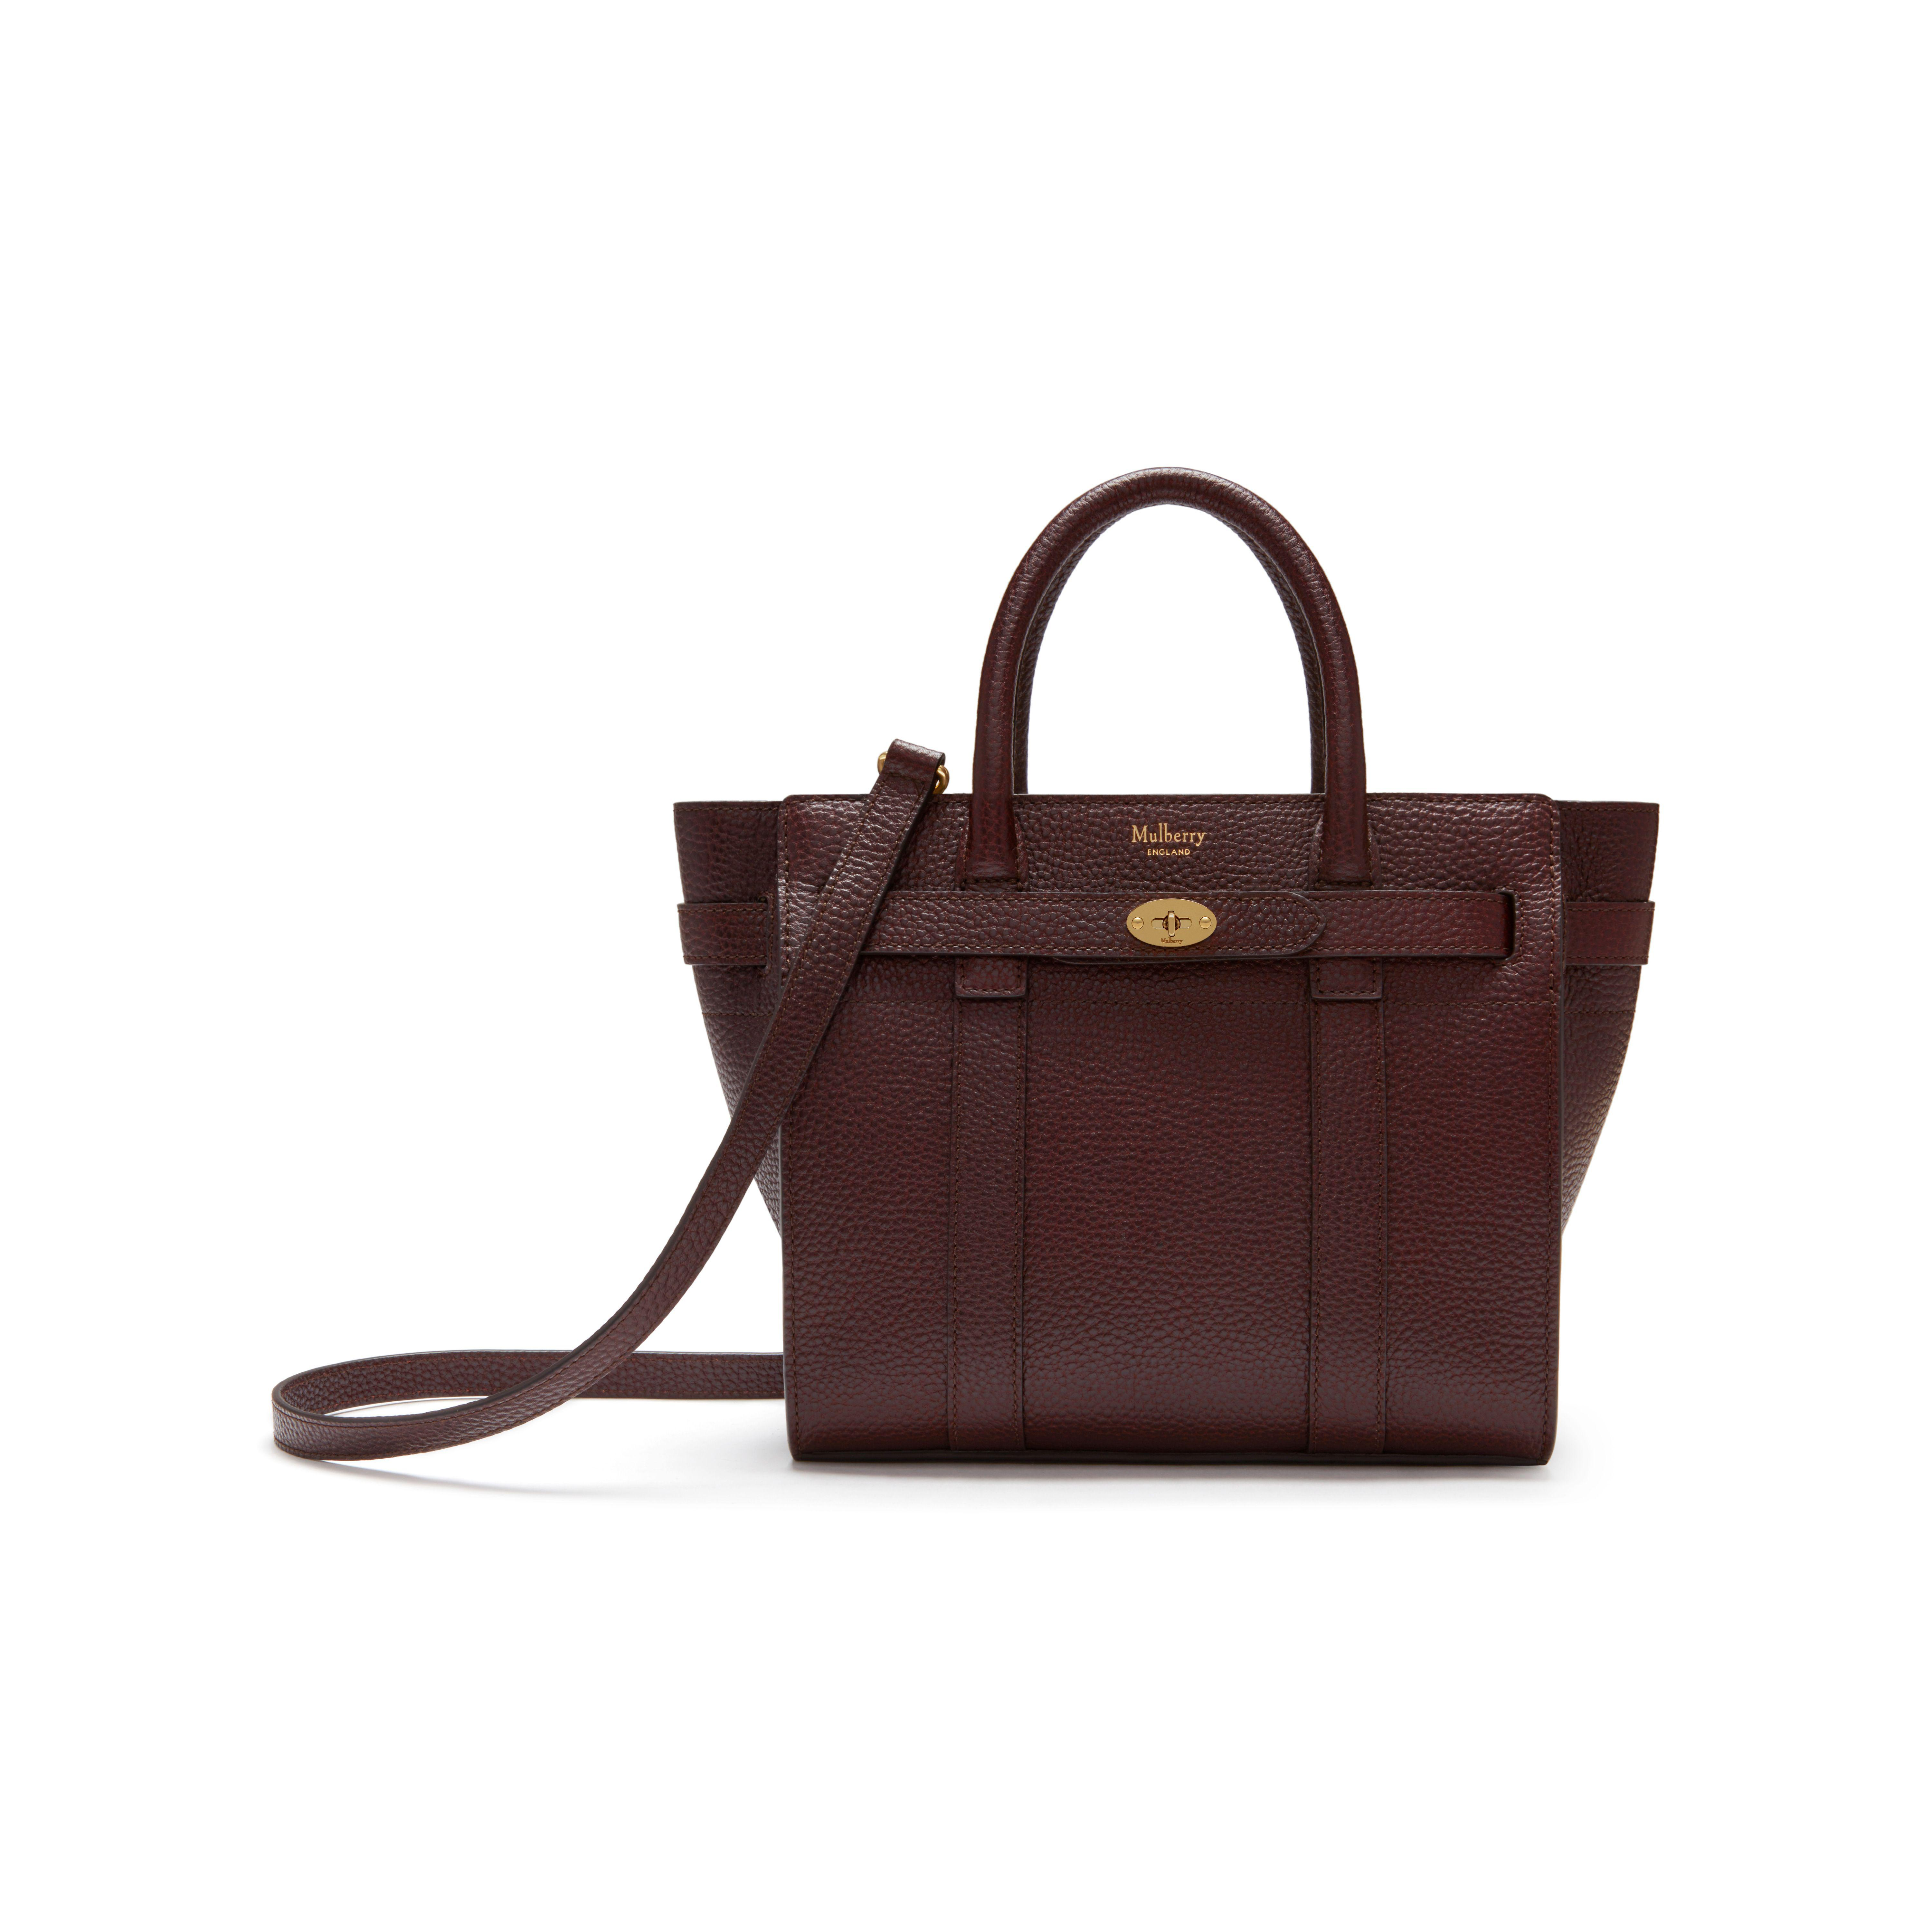 36dc95f636 ... uk mulberry multicolor small zipped bayswater lyst. view fullscreen  d92f9 61211